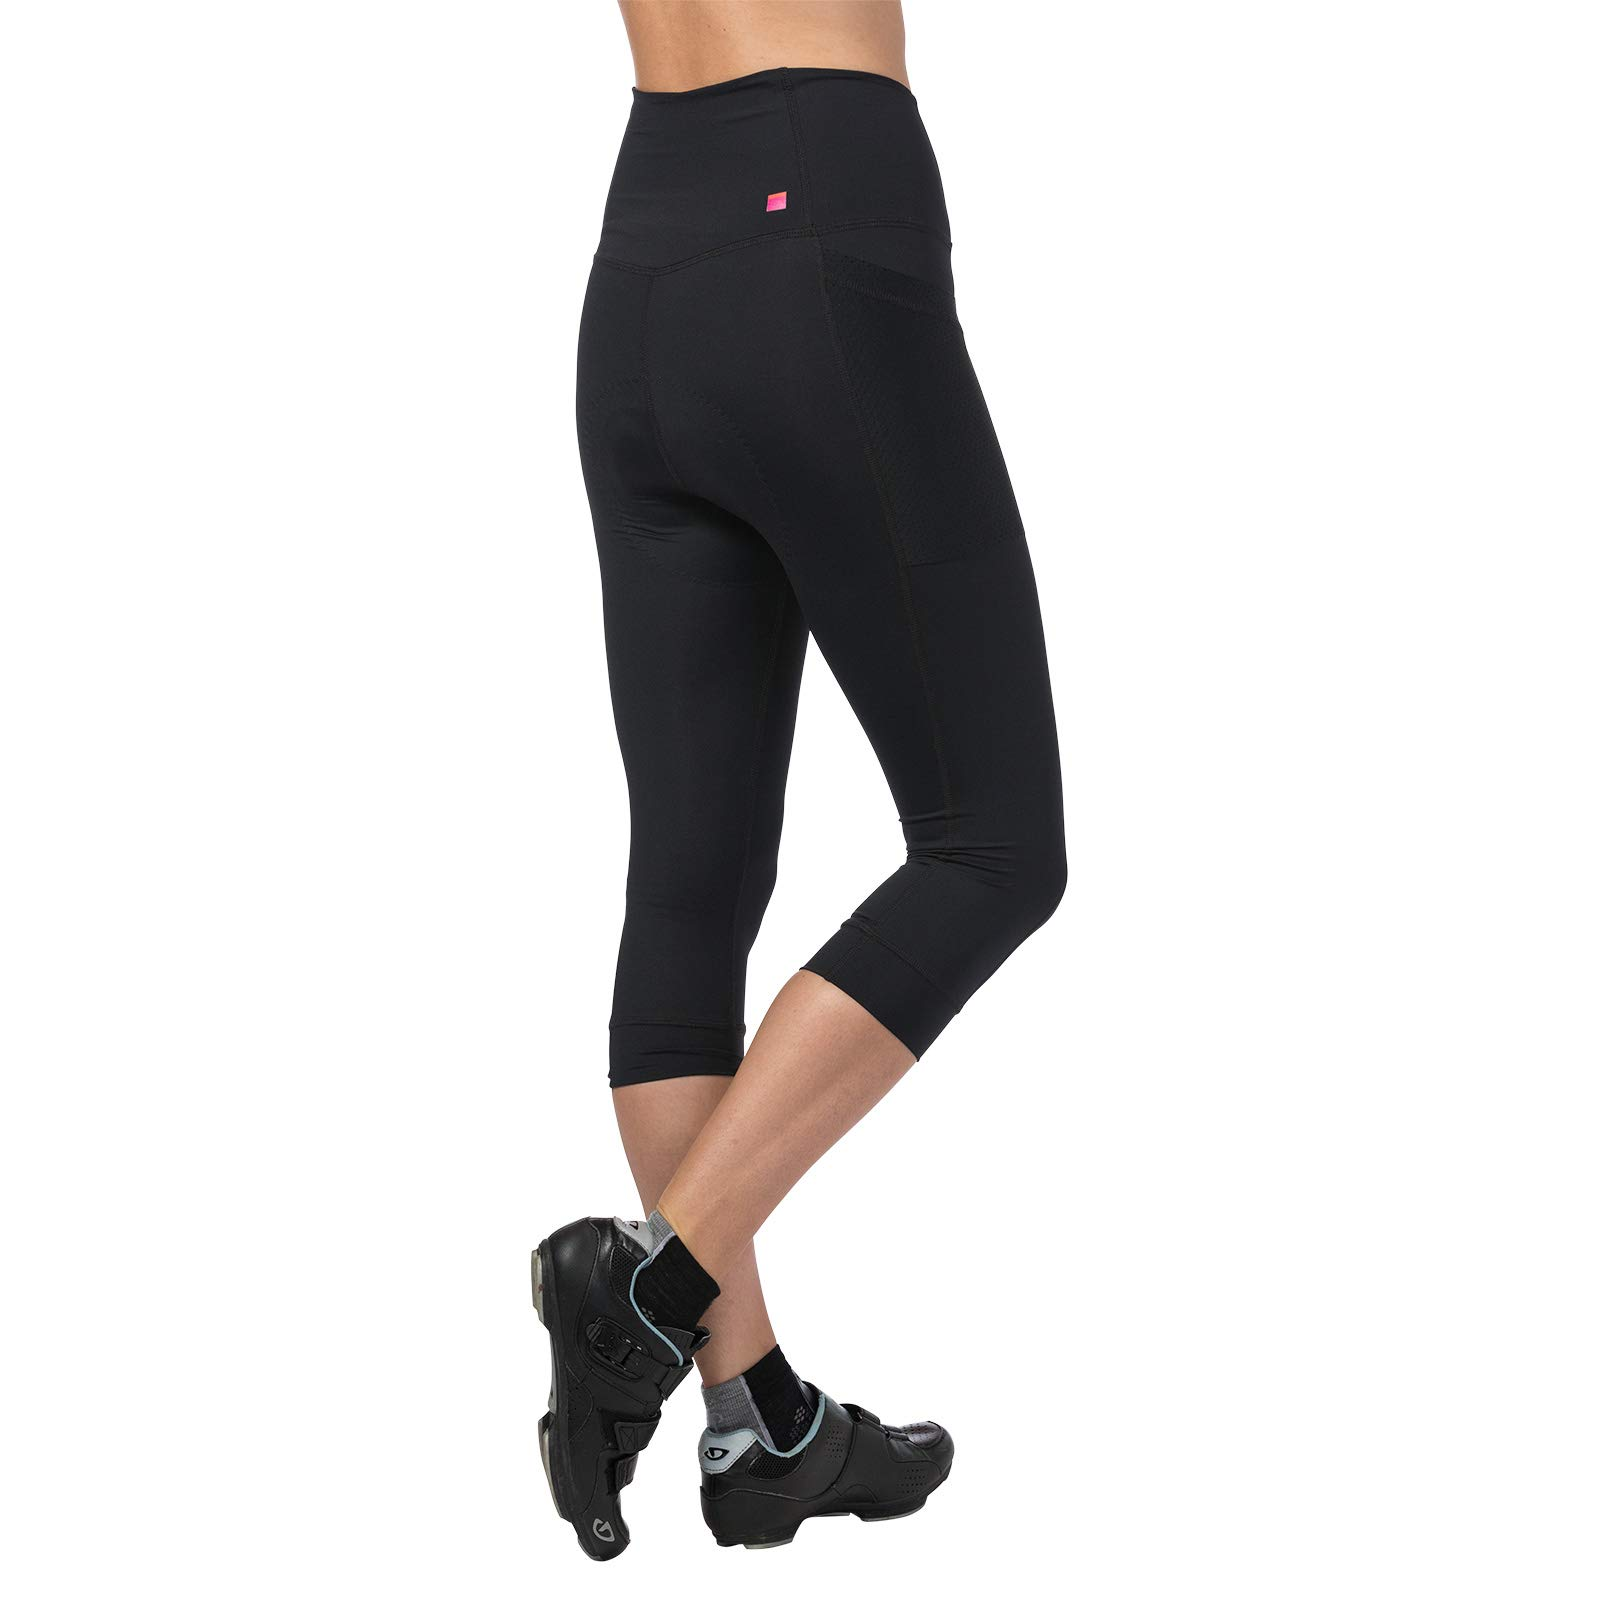 Terry Holster Hi Rise Cycling Capri Pant for Women - Bike Bottoms with Pockets and HI-Rise Waistband Moderate Compression – Black – Small by Terry (Image #2)